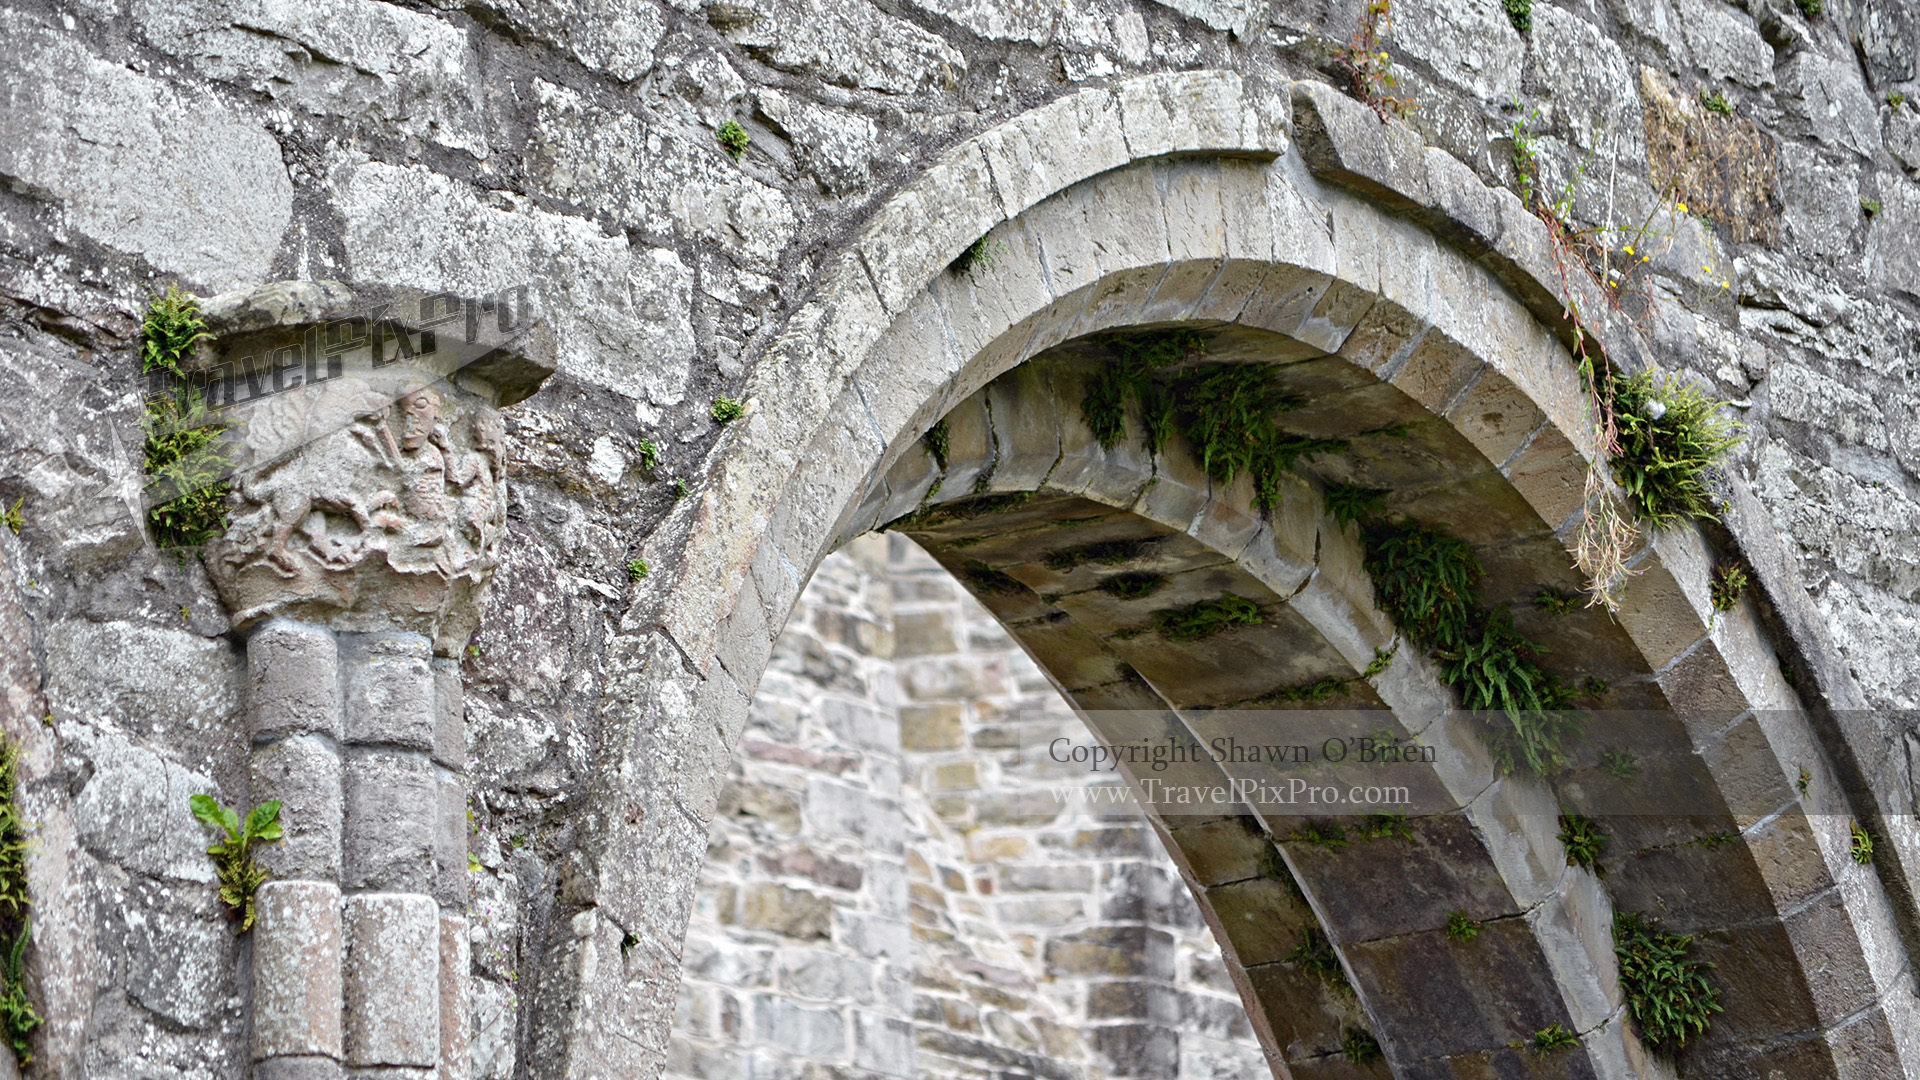 Boyle Abbey Arch & Carving